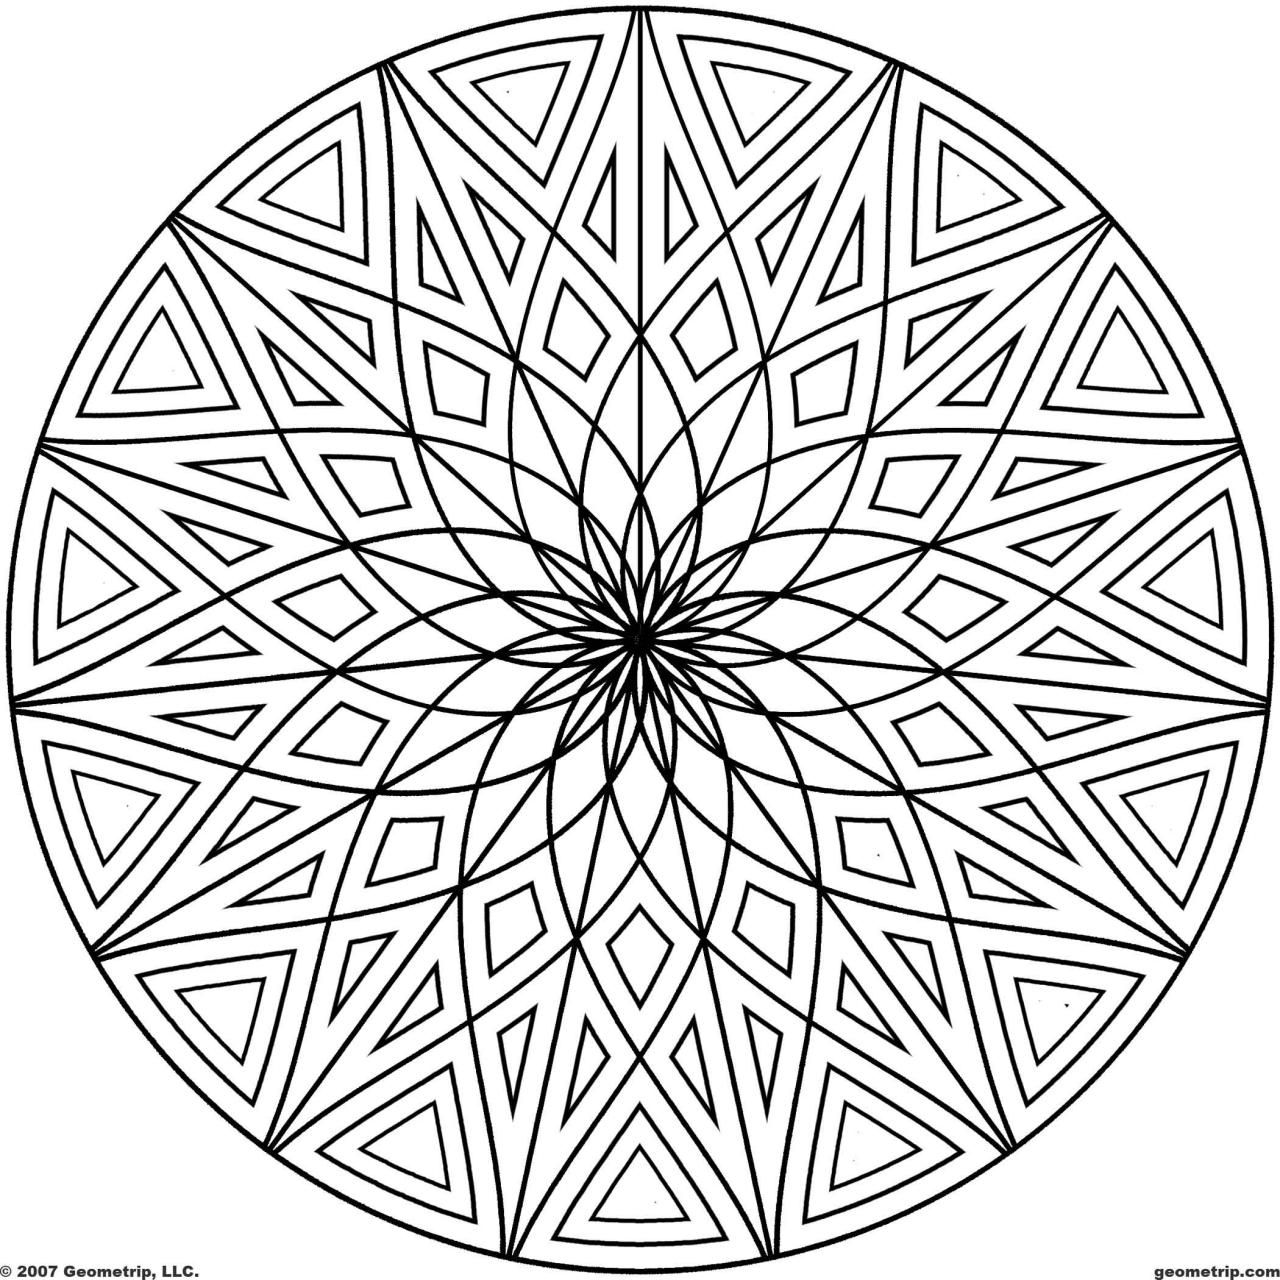 cool designs to color in cool designs to color coloring pages coloring home in designs color to cool